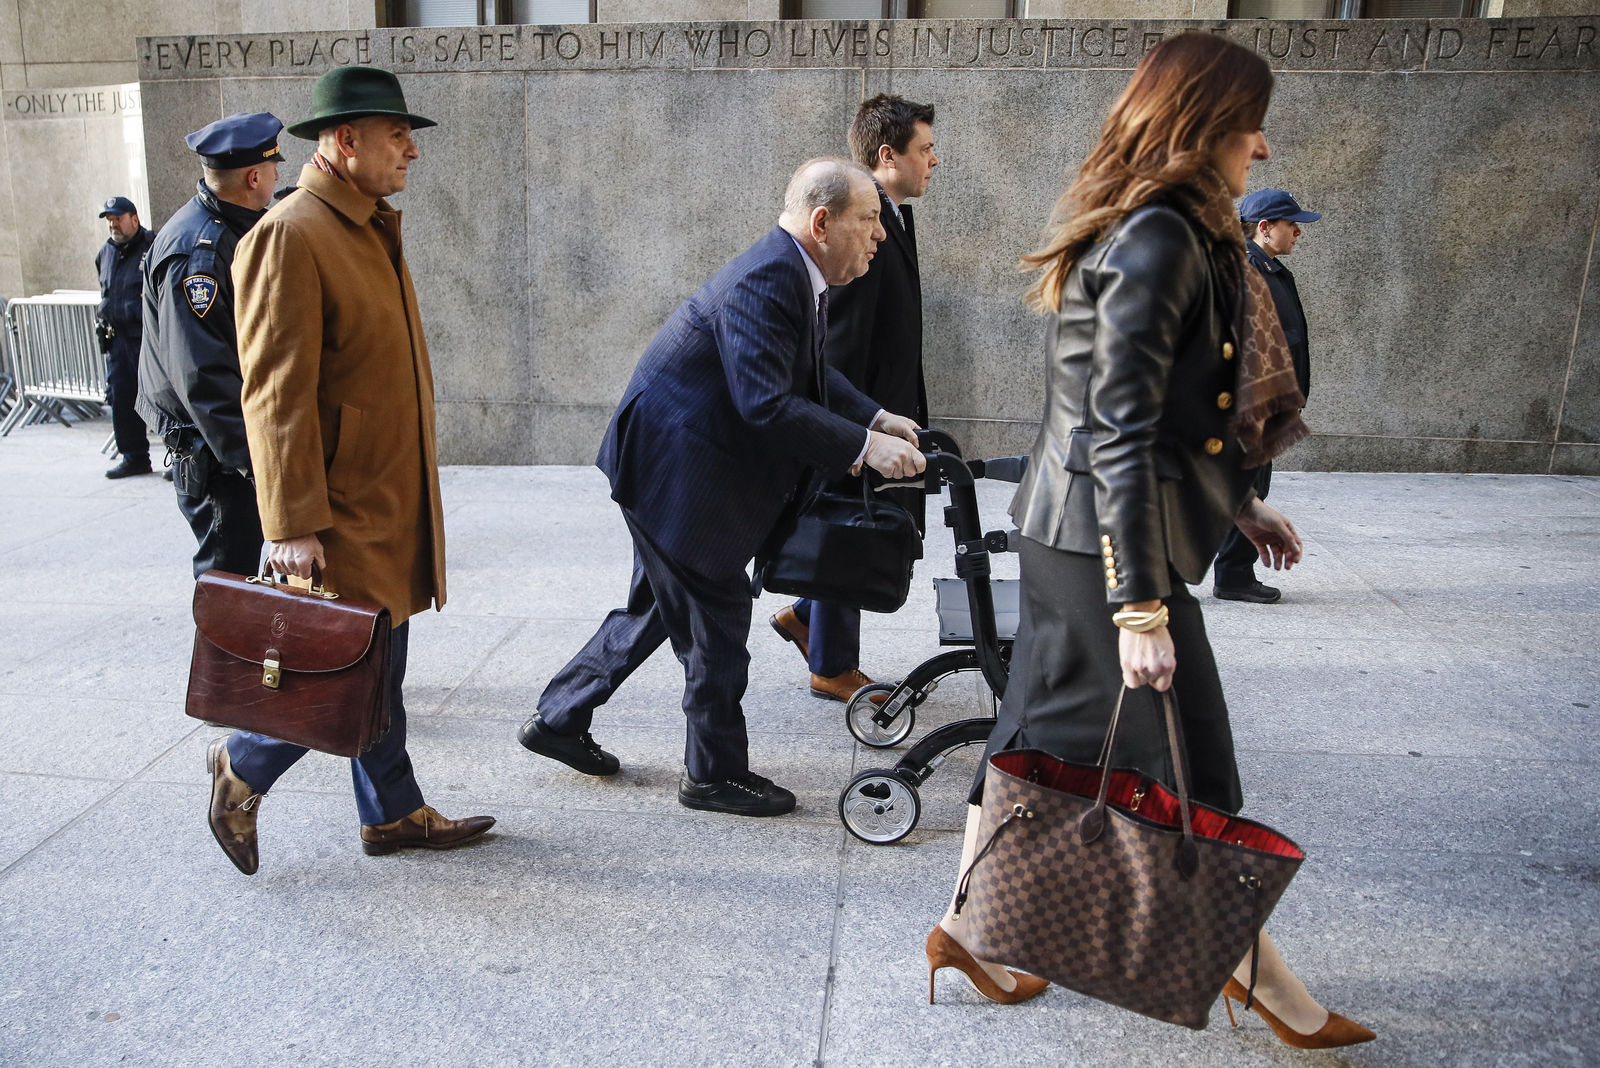 Harvey Weinstein arrives at a Manhattan courthouse as jury deliberations continue in his rape trial, Wednesday, Feb. 19, 2020, in New York.  (AP Photo/John Minchillo)